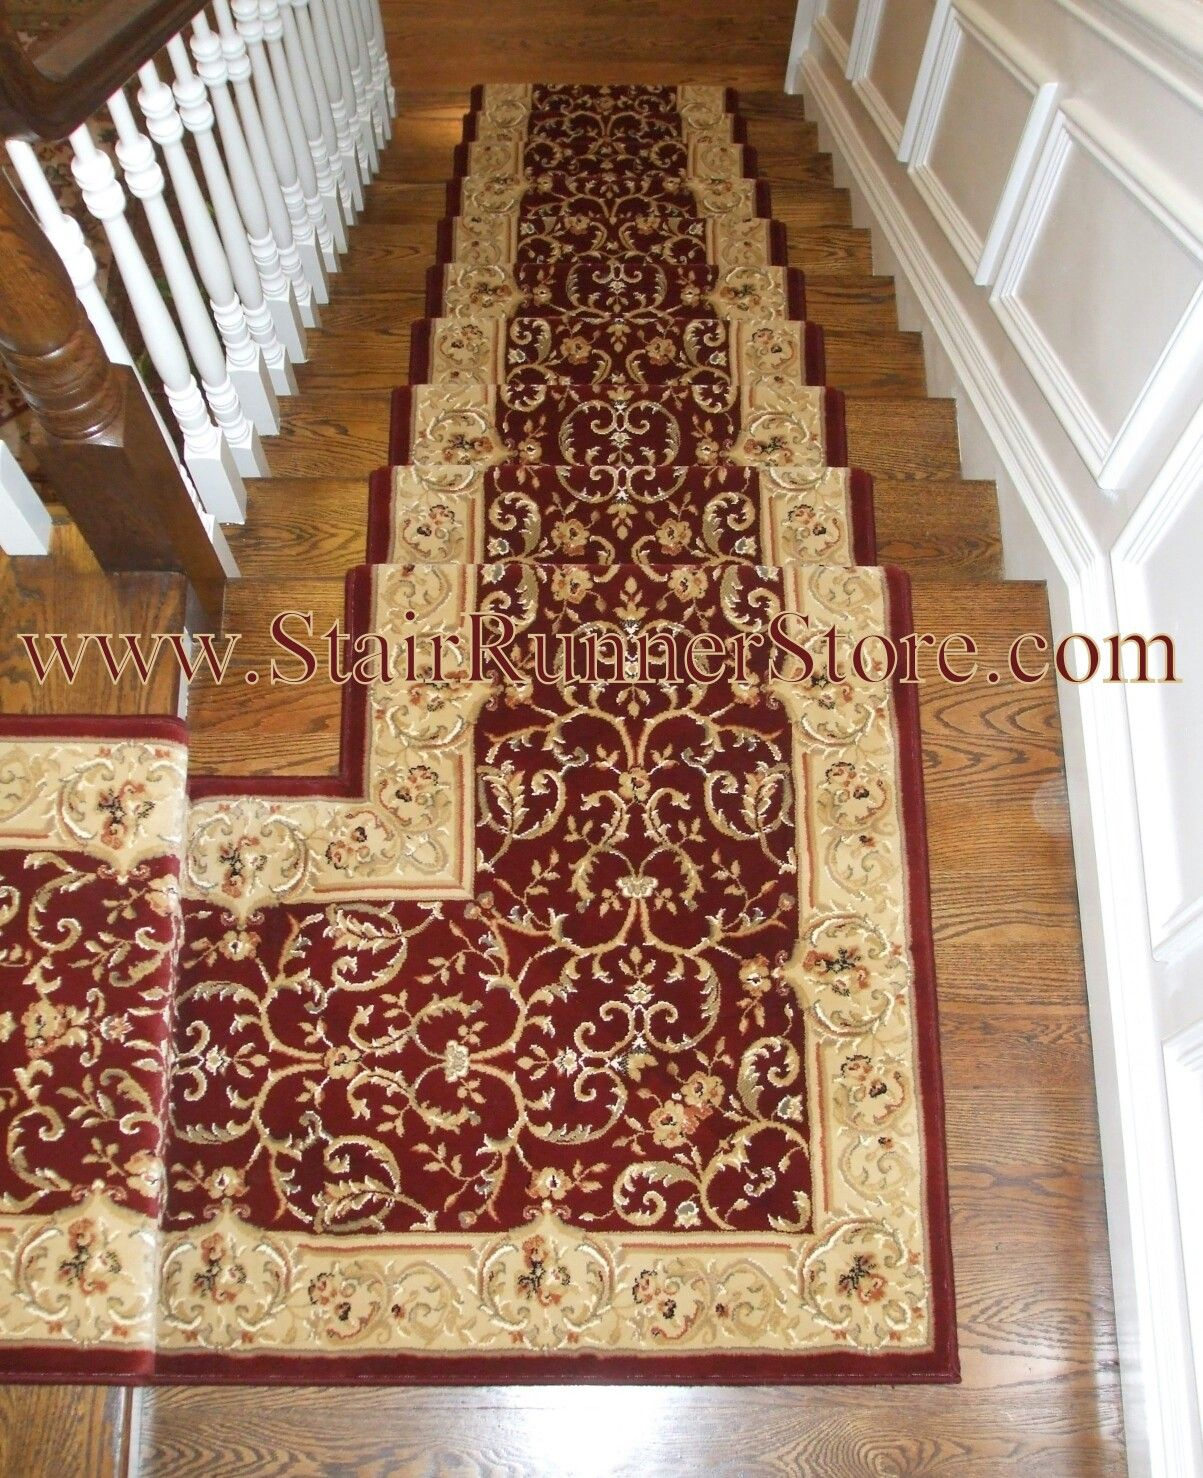 Best Image By Nanette Michelle On Remodel Carpet Stairs 400 x 300